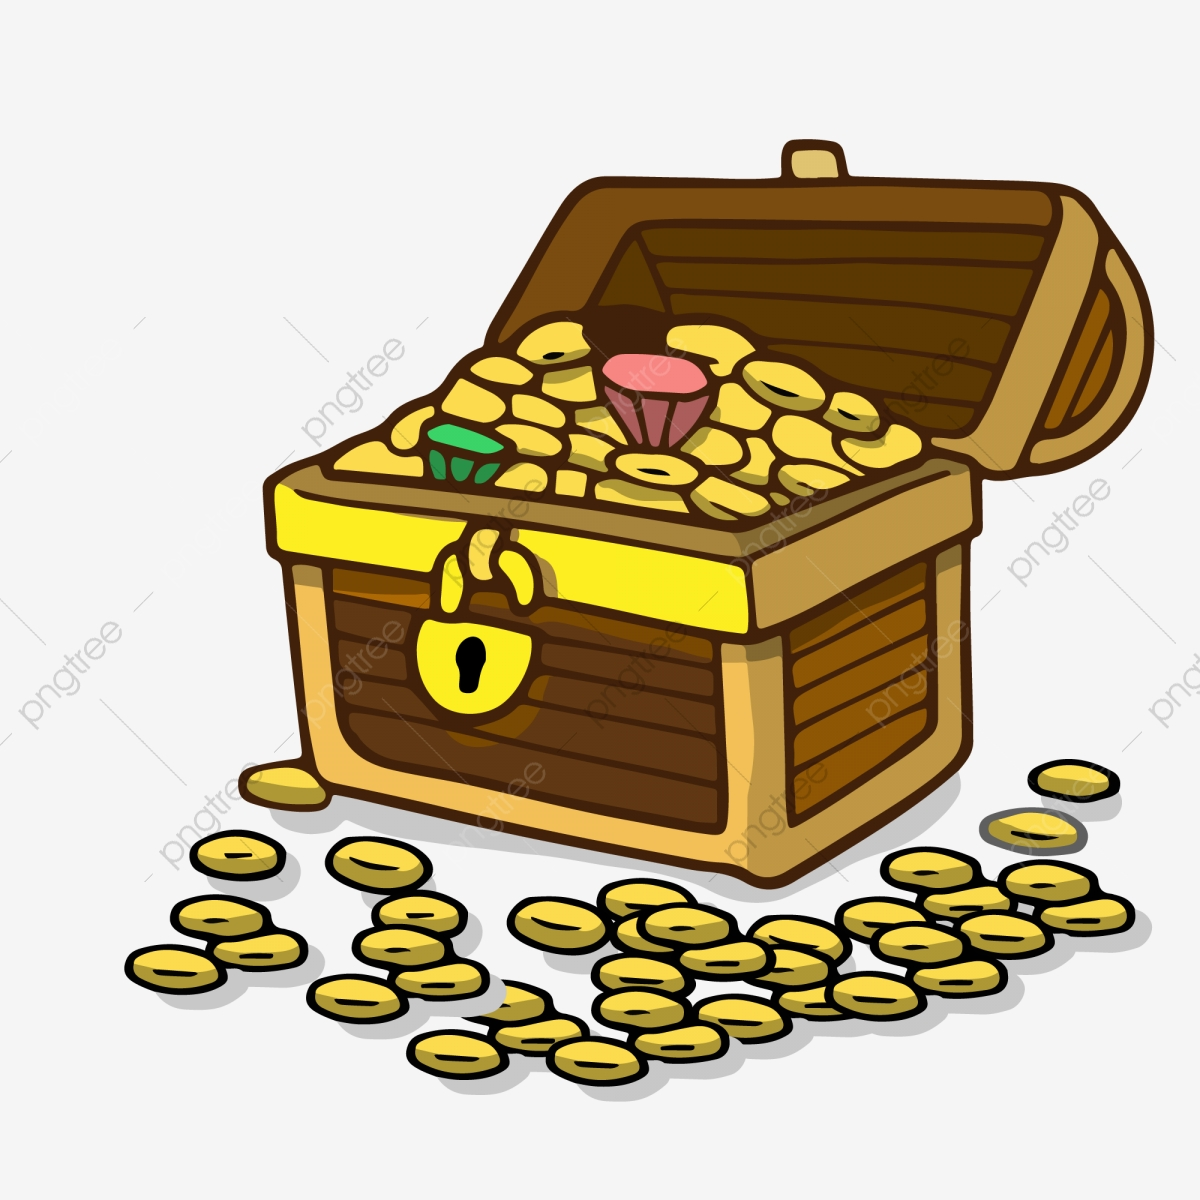 Treasure clipart vector. Box ui design icon